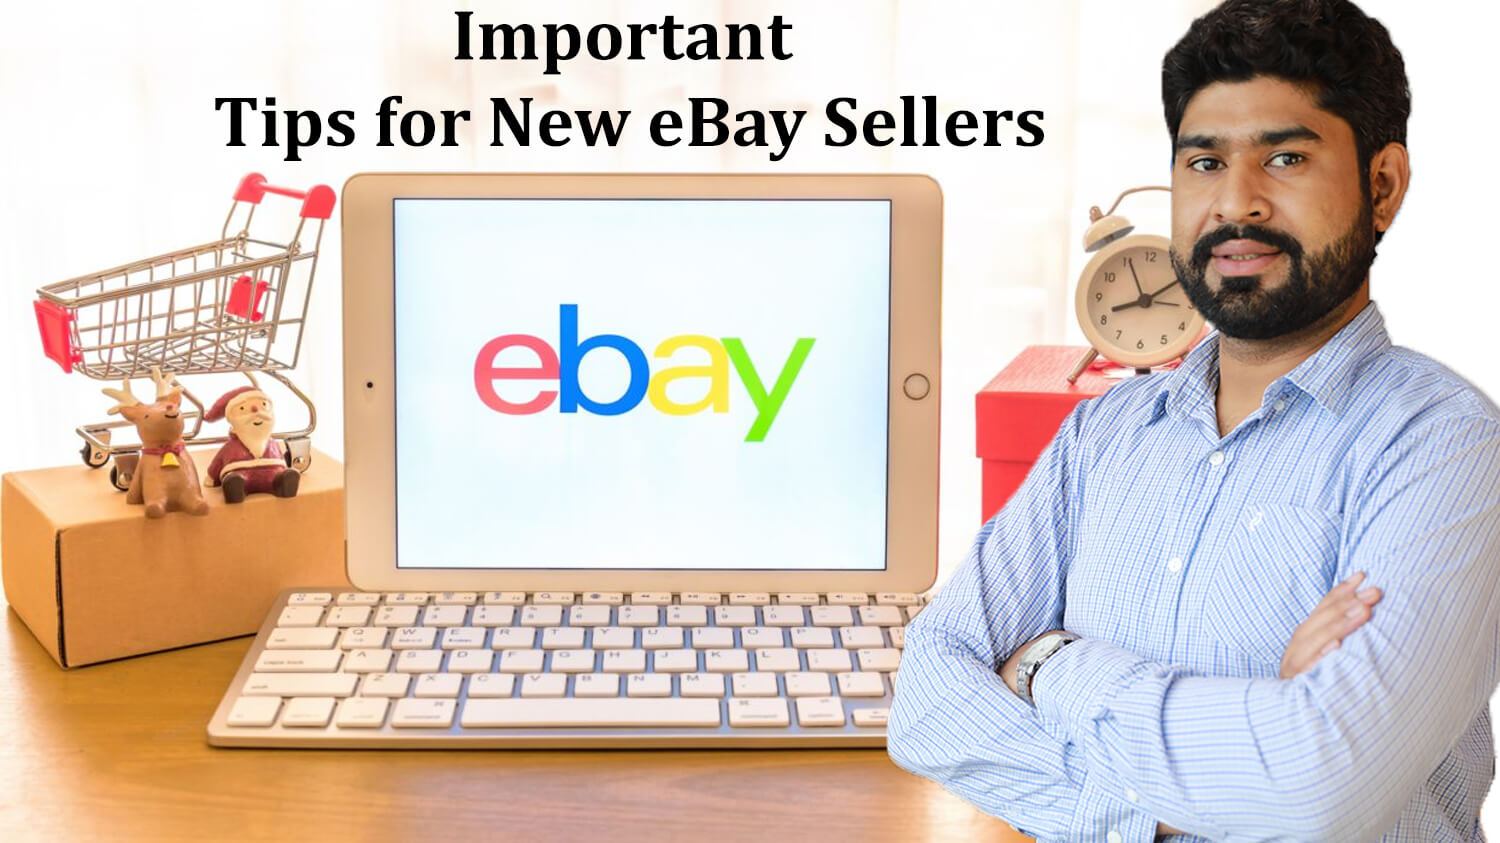 Important Tips for New eBay Sellers